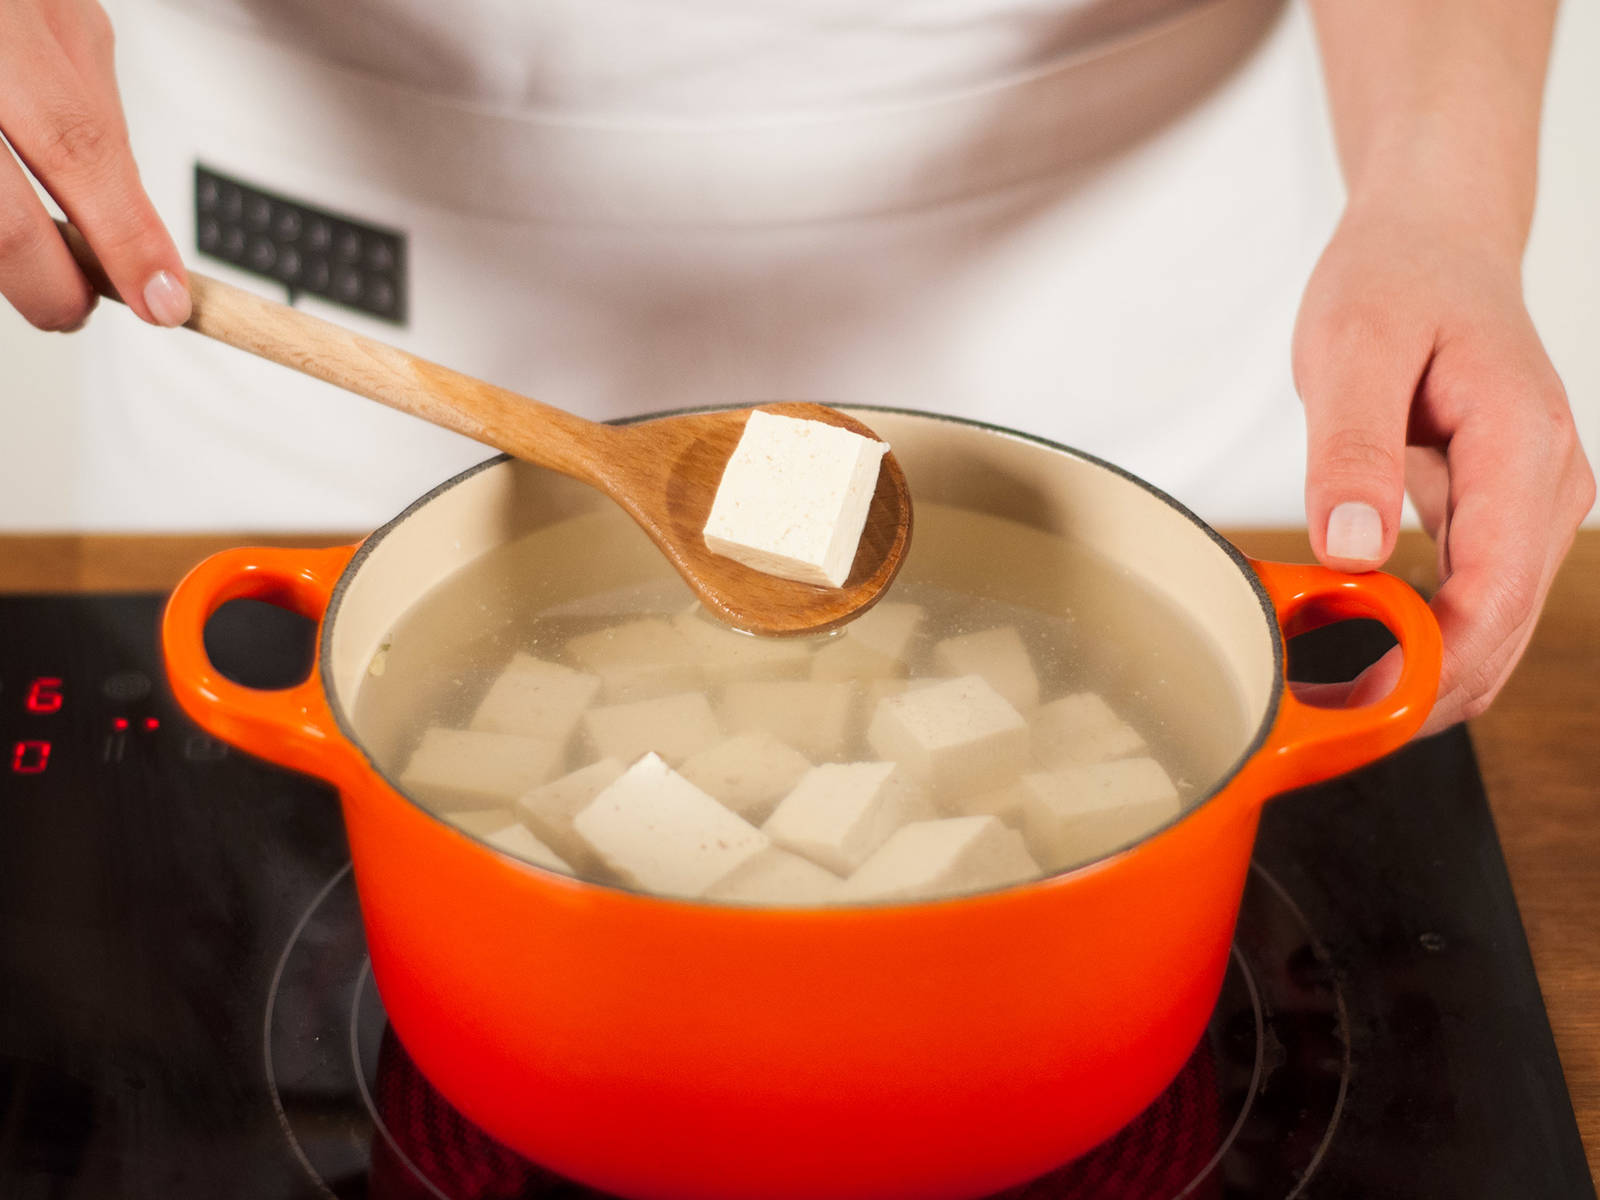 Add water to a small saucepan and bring to a boil. Place tofu into boiling water and allow to cook for approx. 3 – 5 min. until tofu cubes rise to the surface. Drain.